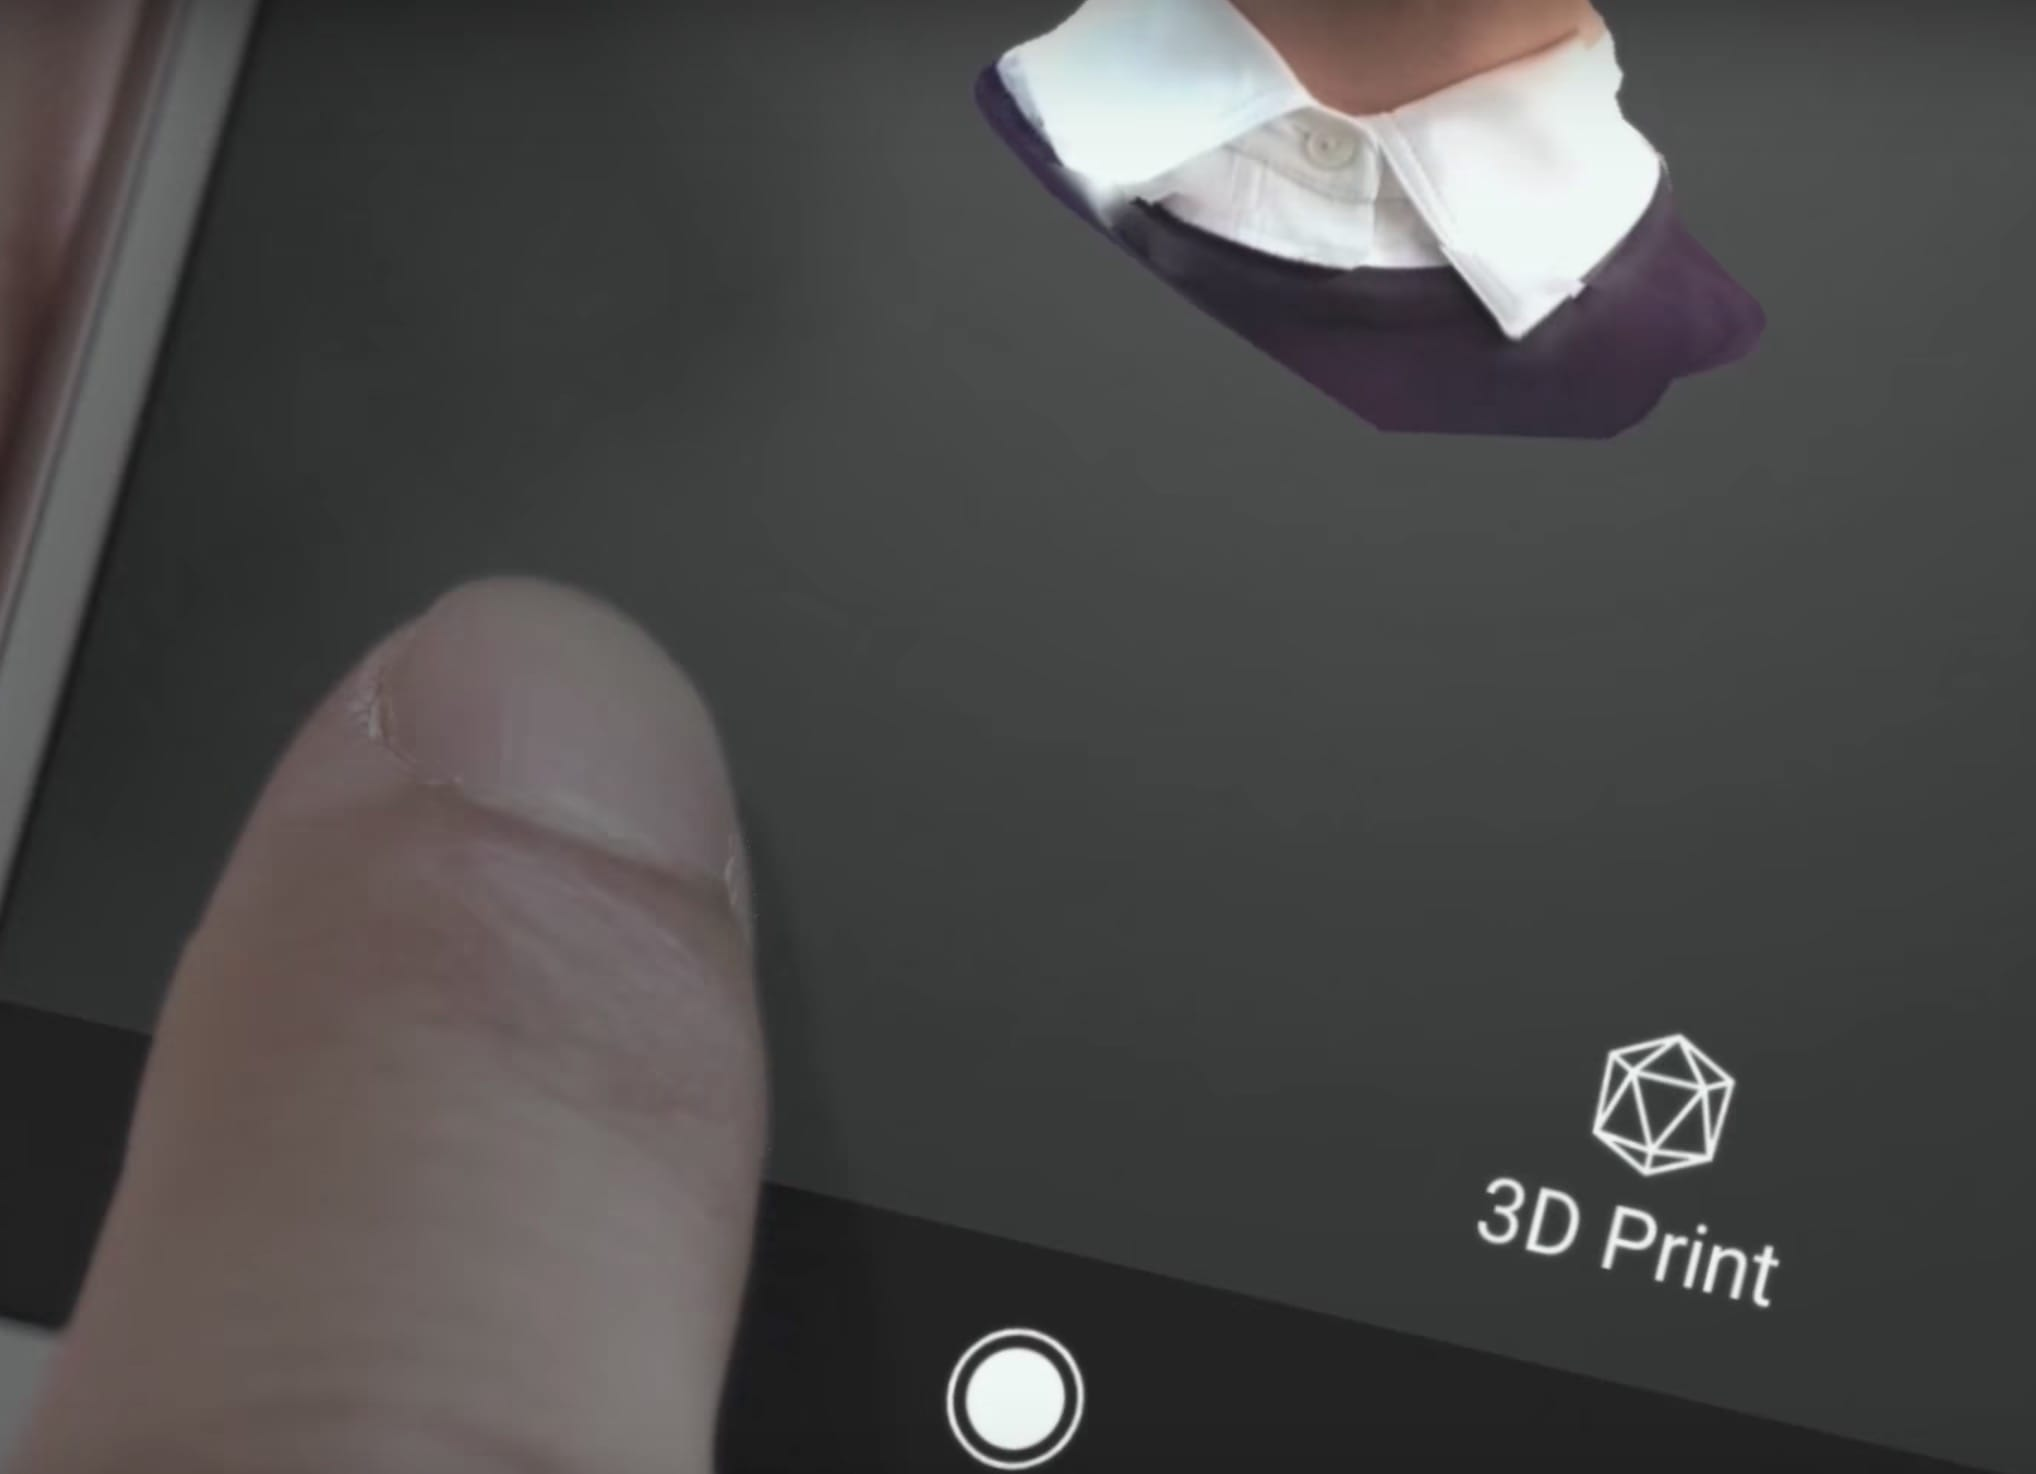 What Happens When 3D Printing From Smartphones Becomes Common?